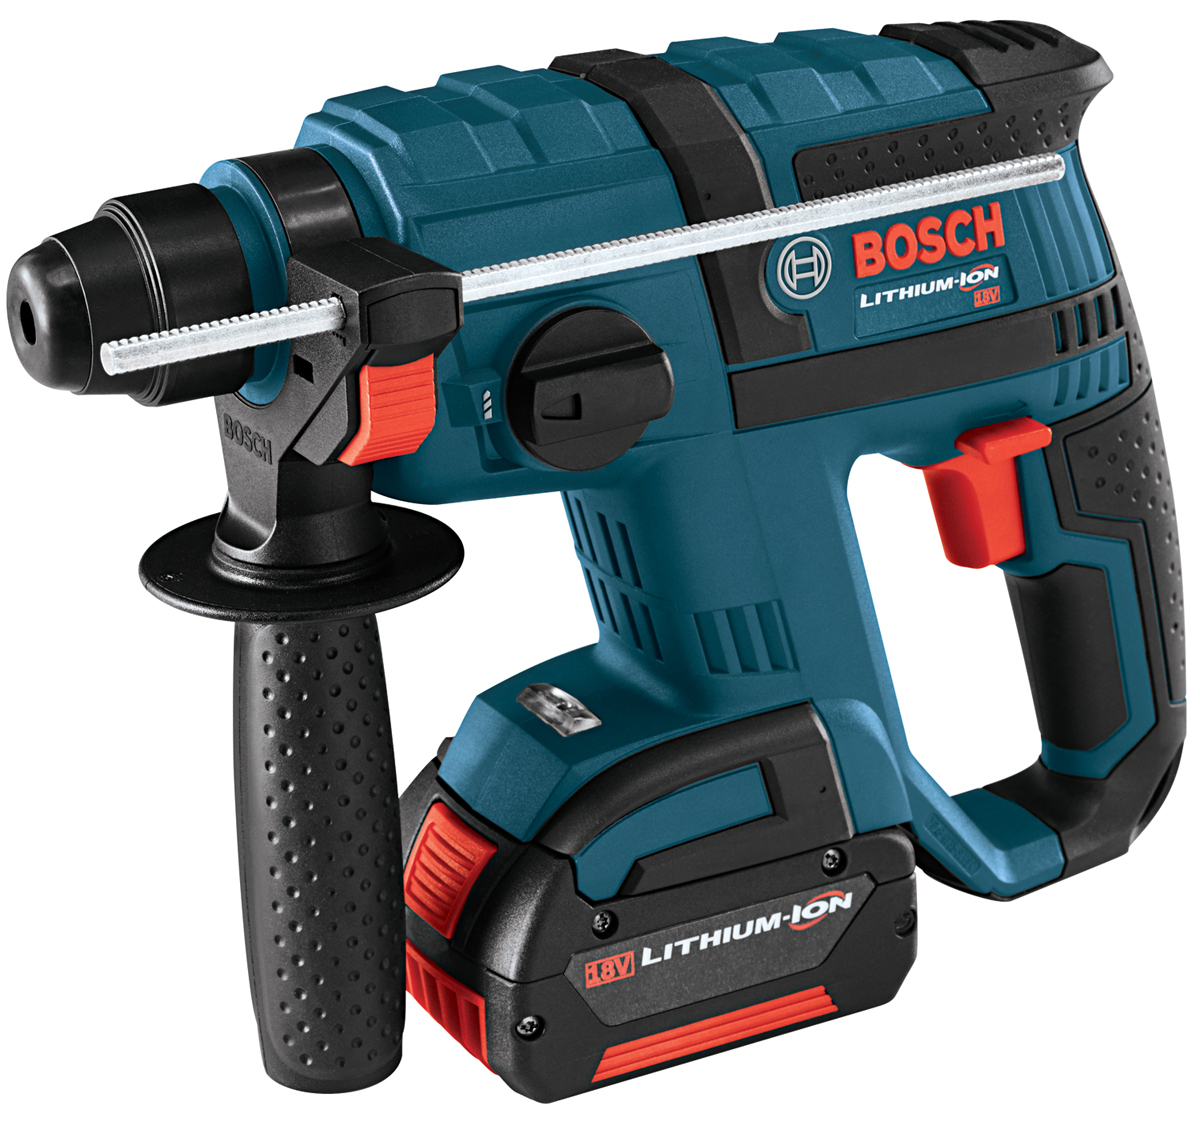 bosch rhh180 18v sds plusr rotary hammer offers unbeatable combination of power and weight. Black Bedroom Furniture Sets. Home Design Ideas